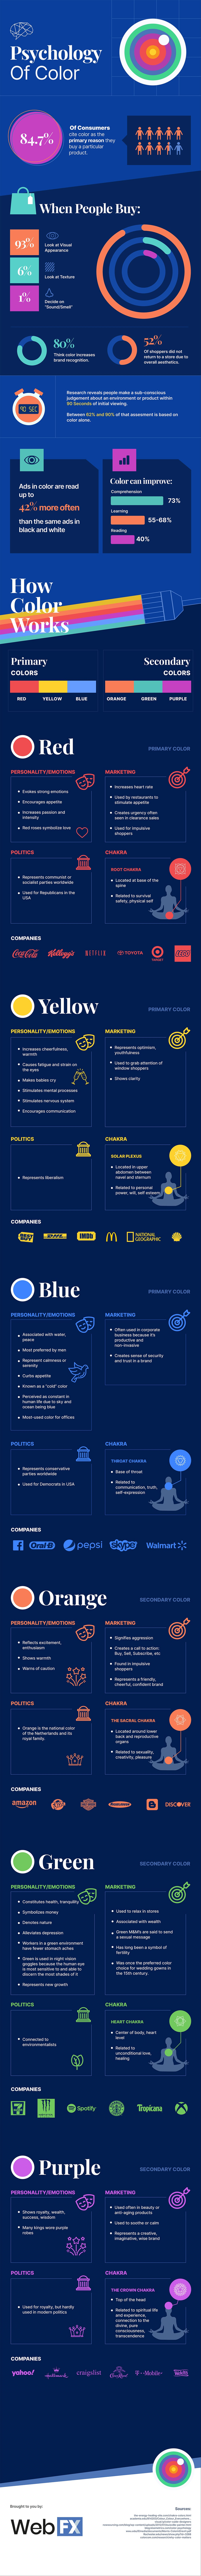 web design colour psychology tips - choosing the right colours for your website - infographic